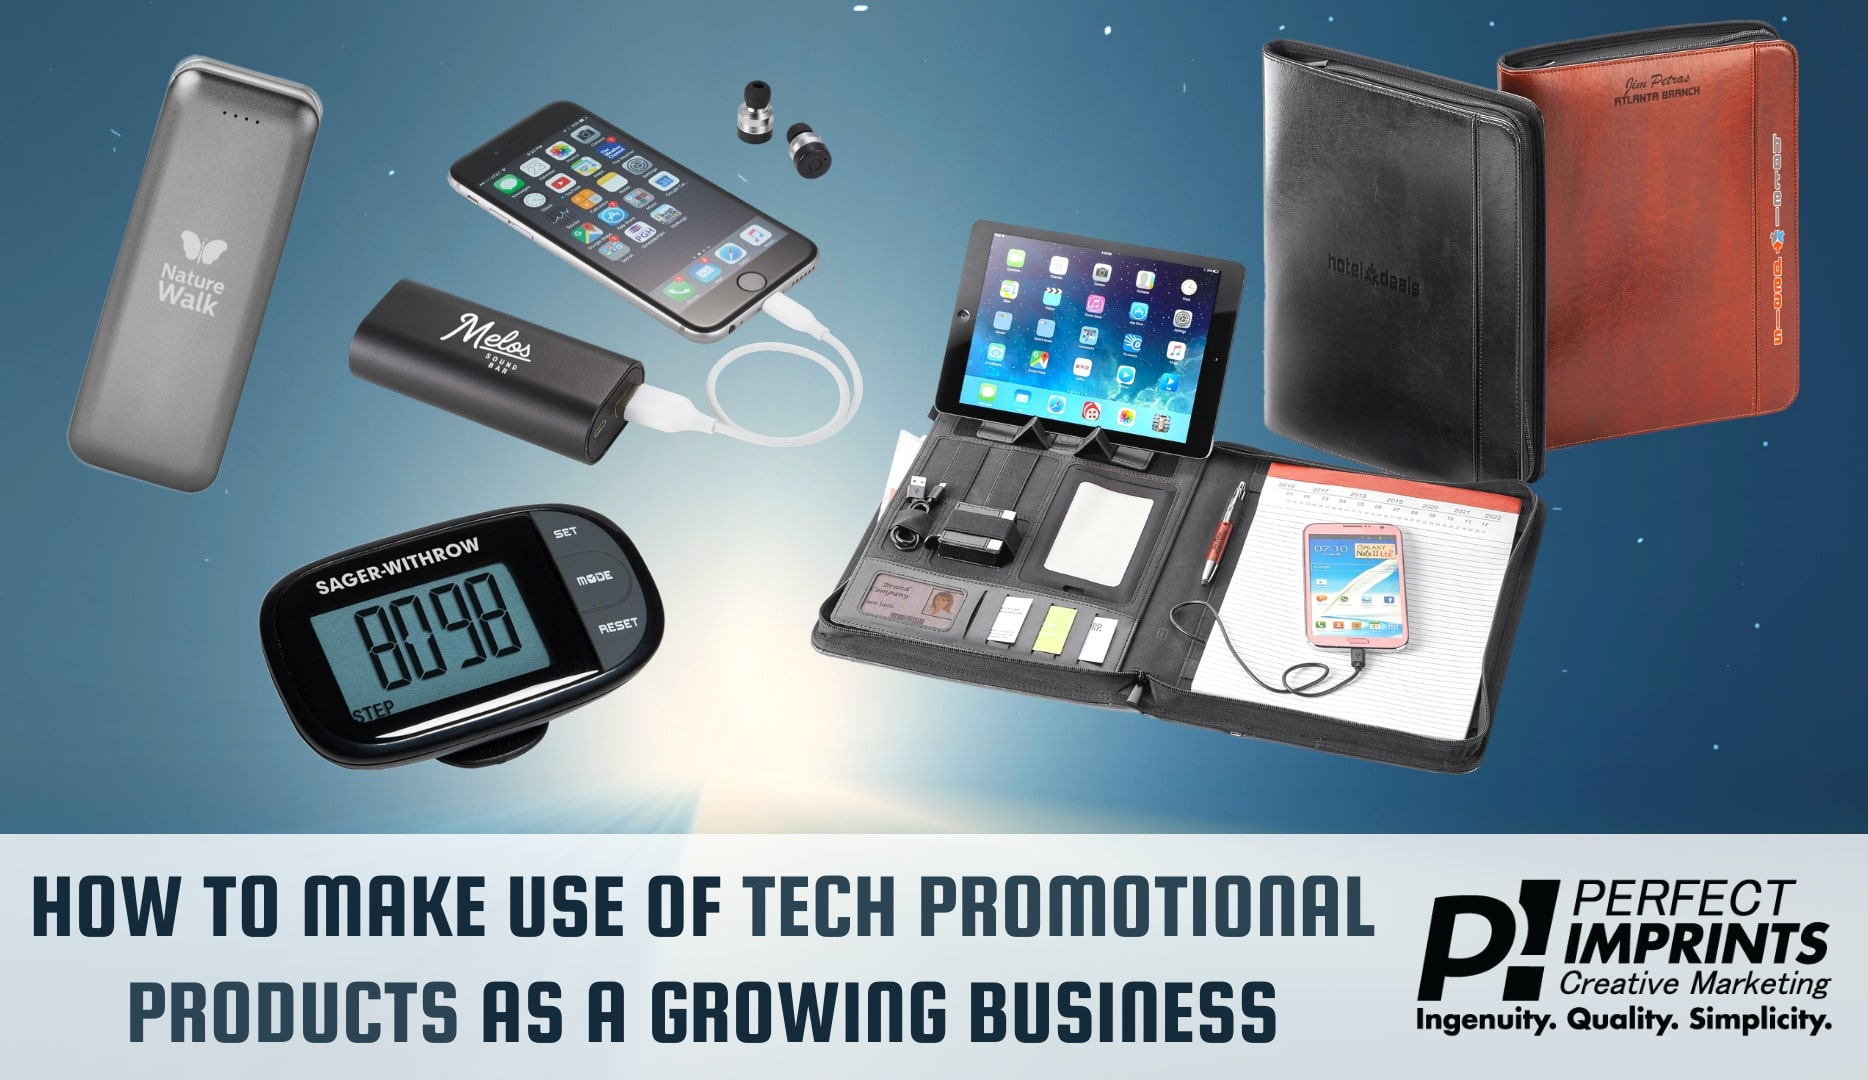 How To Make Use Of Tech Promotional Products As A Growing Business